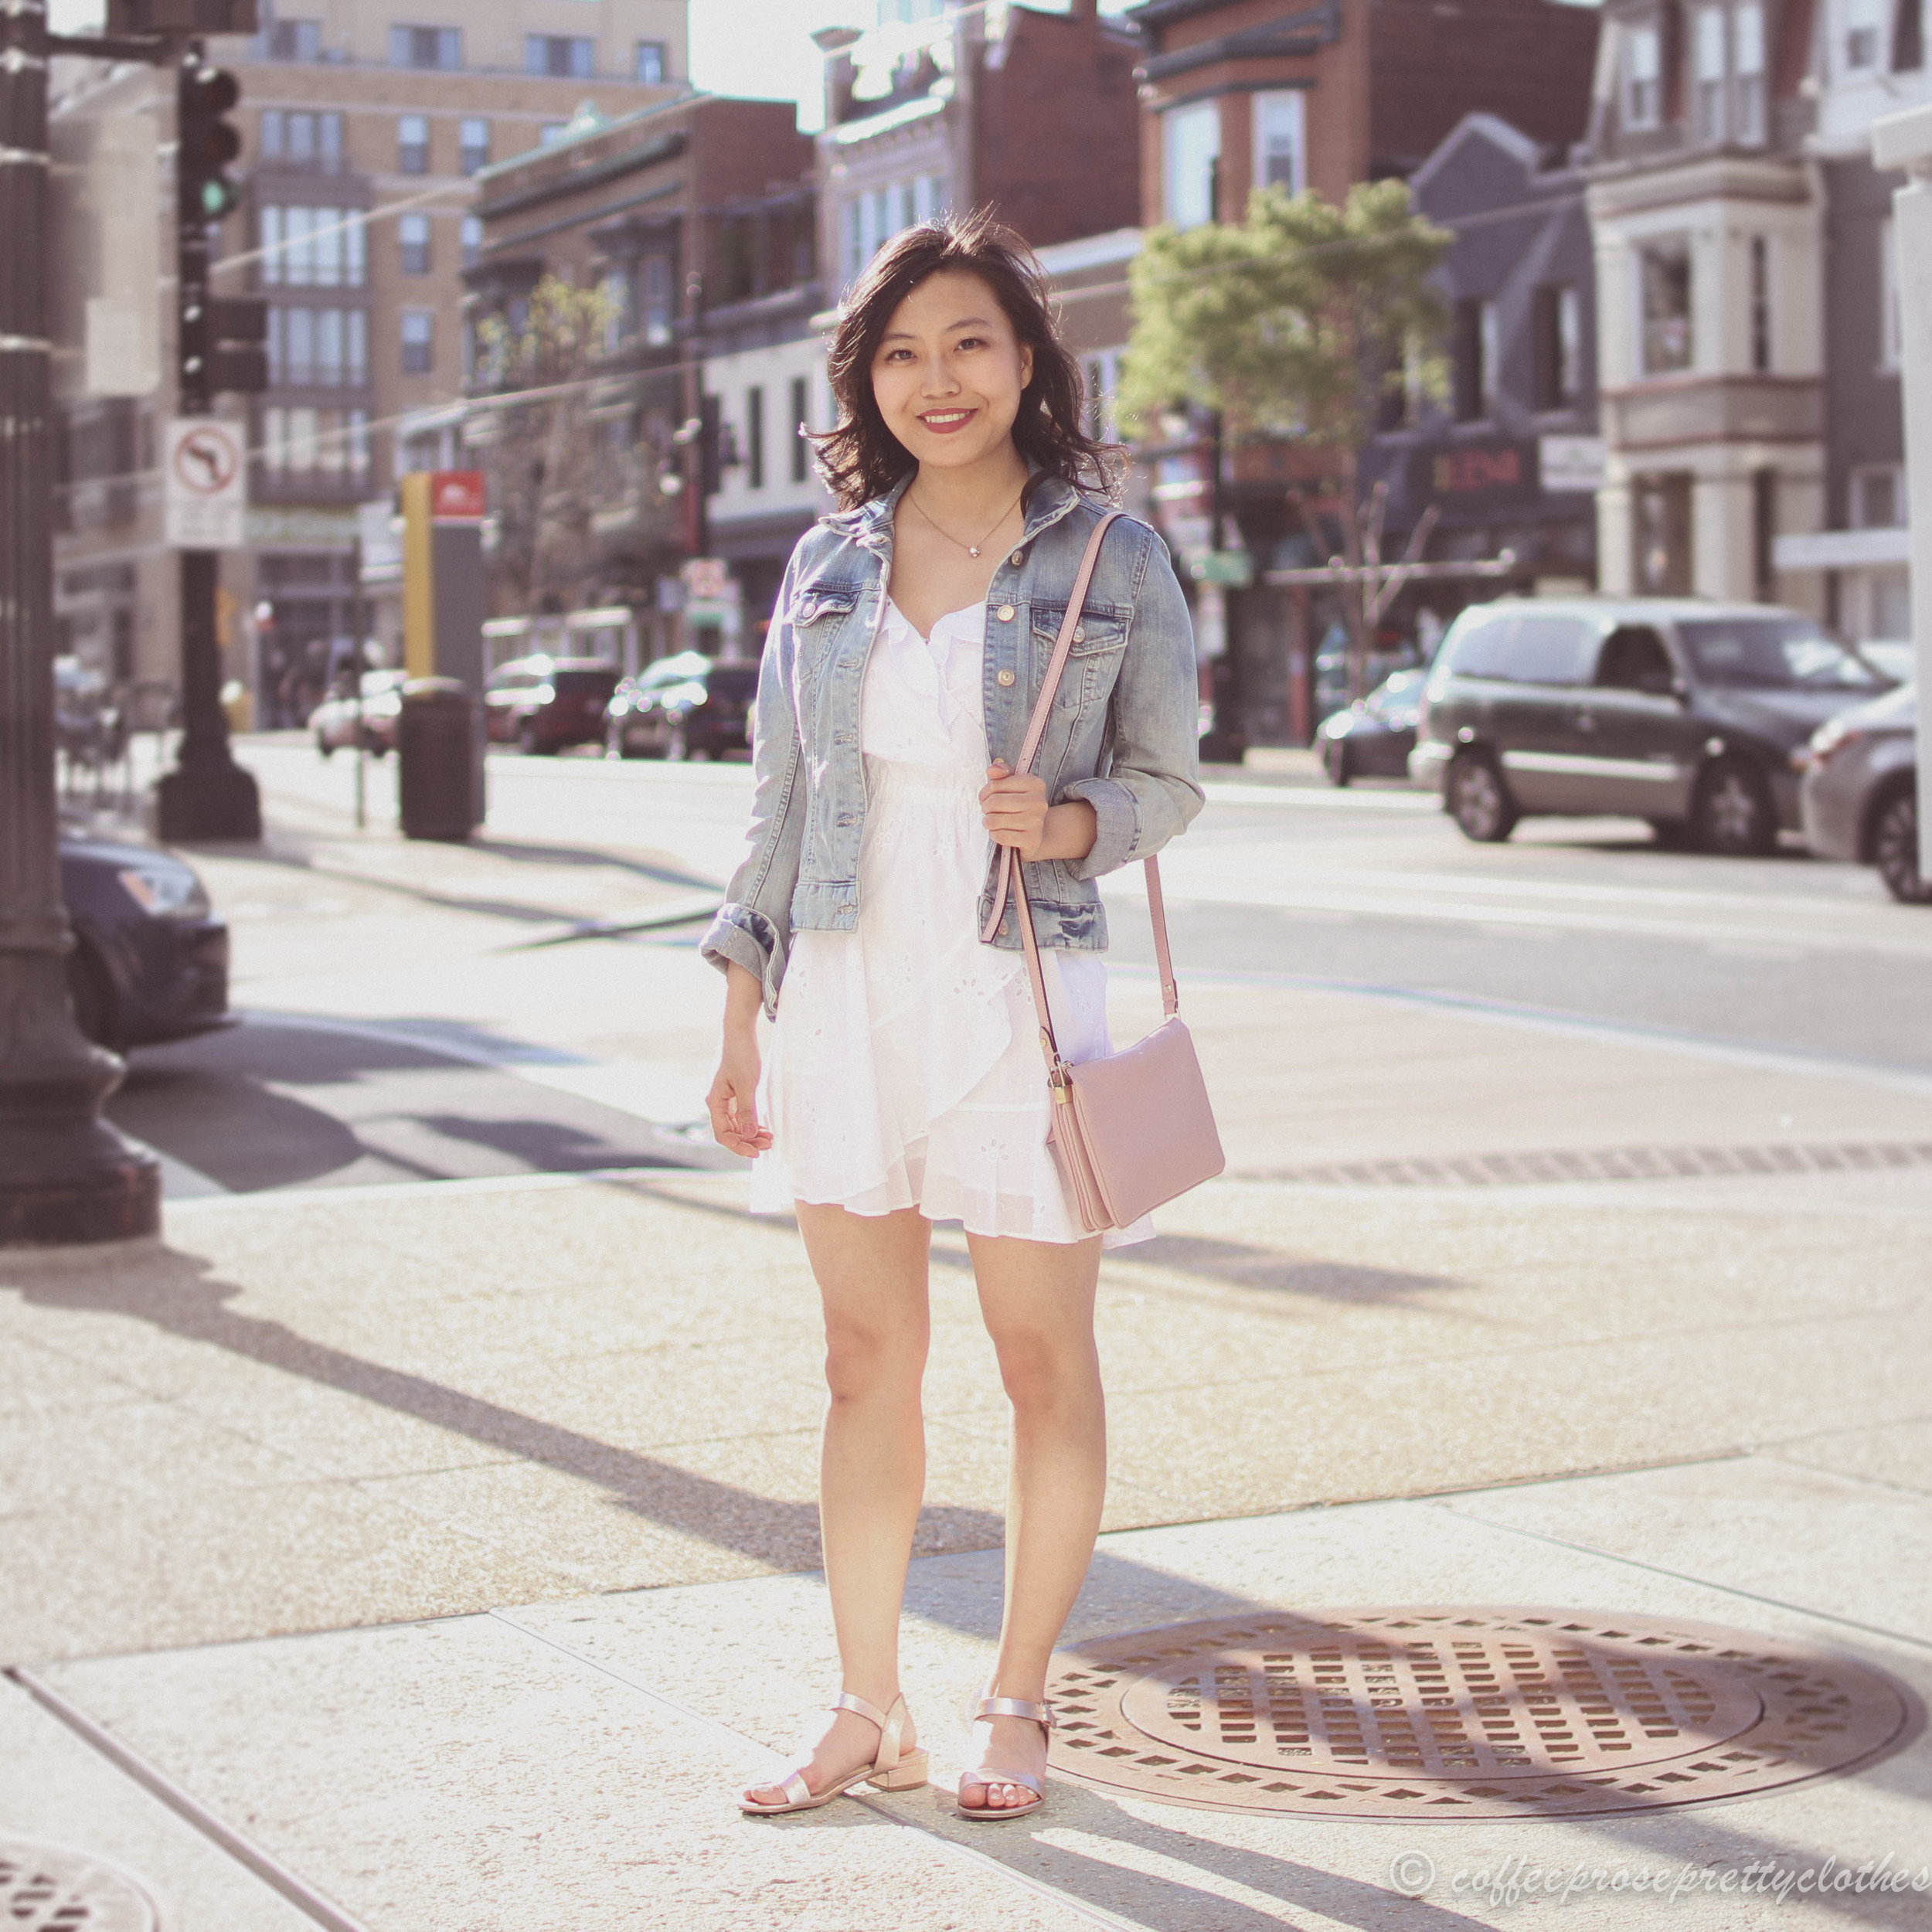 Eyelet Ruffles and Denim Jacket